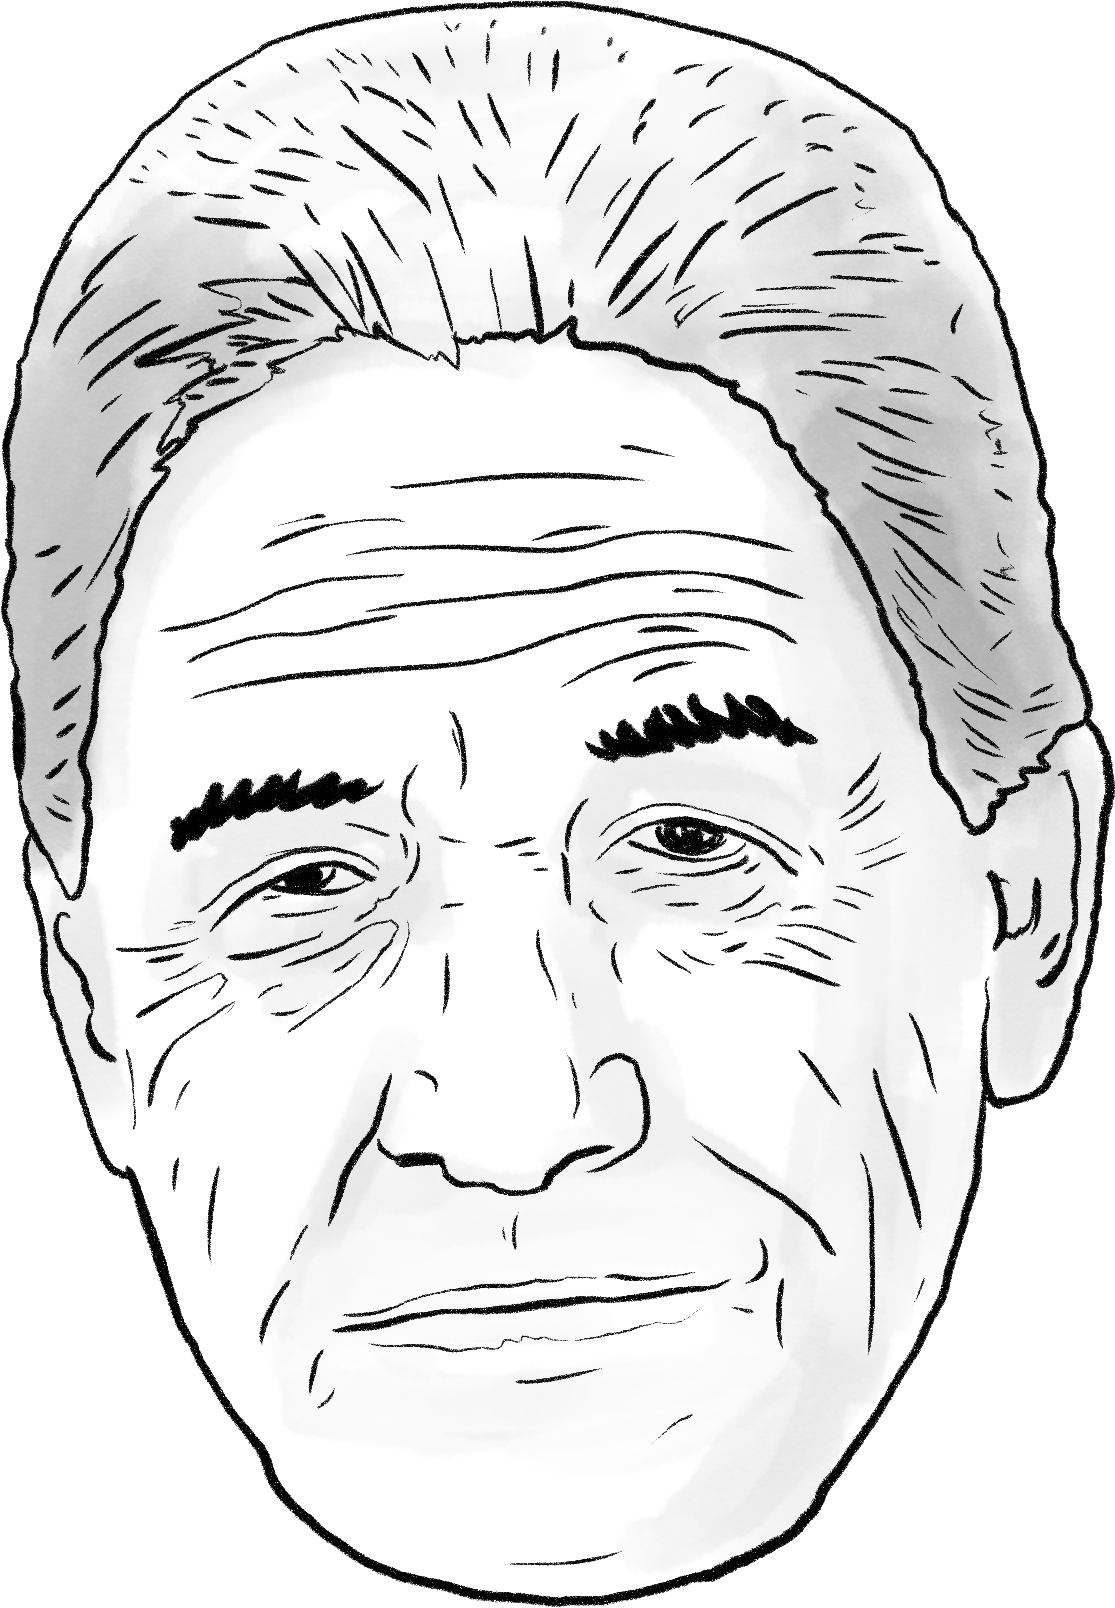 image free homeless drawing people's face #97843089